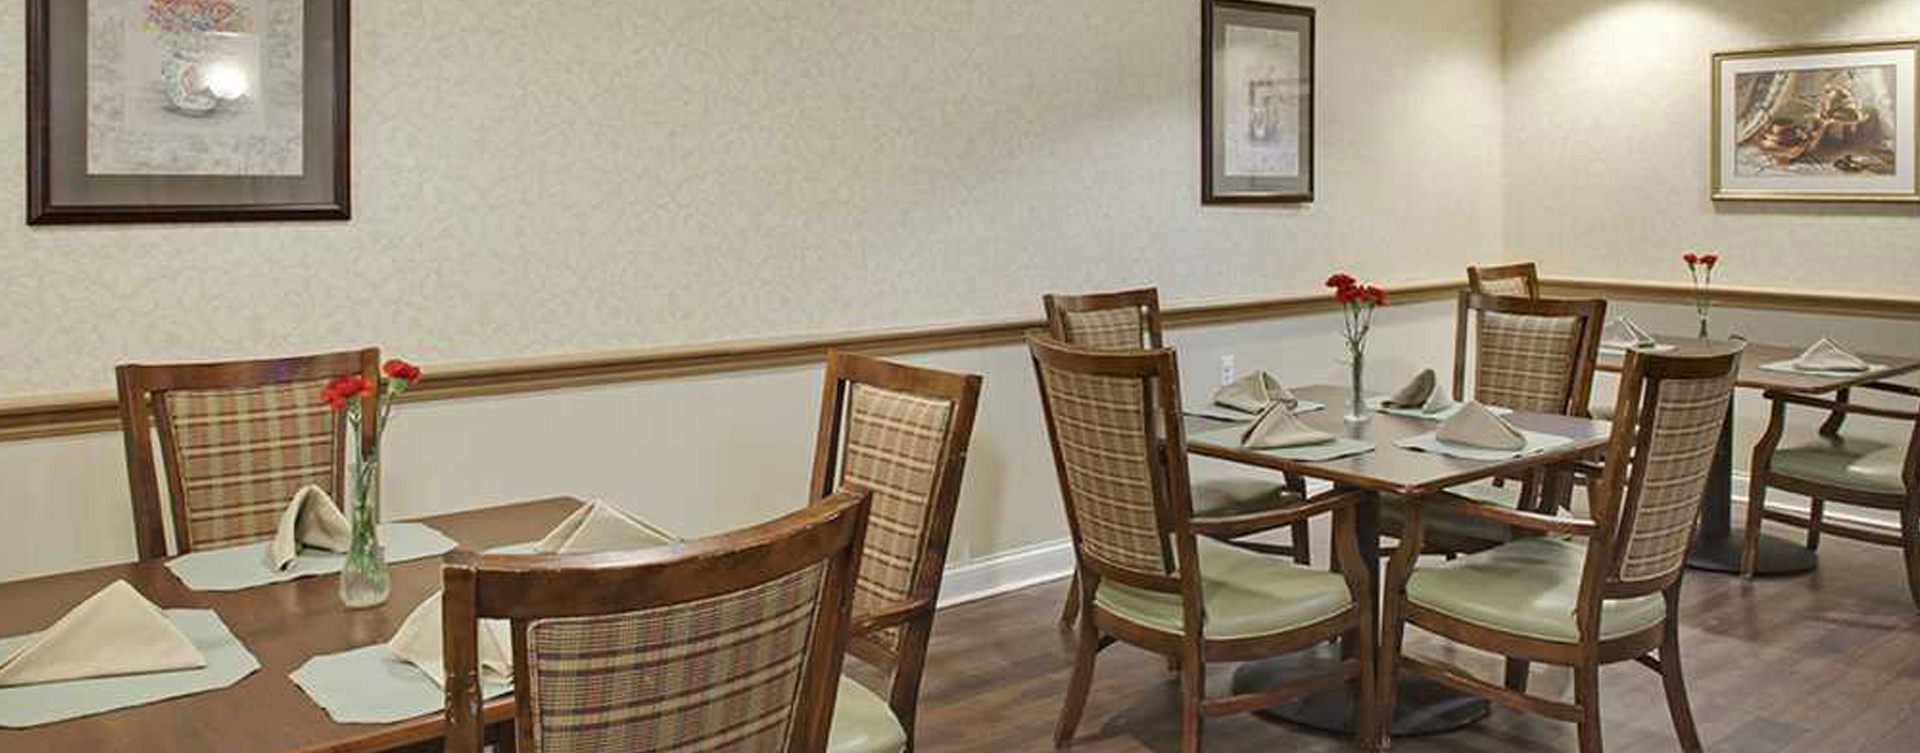 Enjoy homestyle food with made-from-scratch recipes in our dining room at Bickford of Rocky River